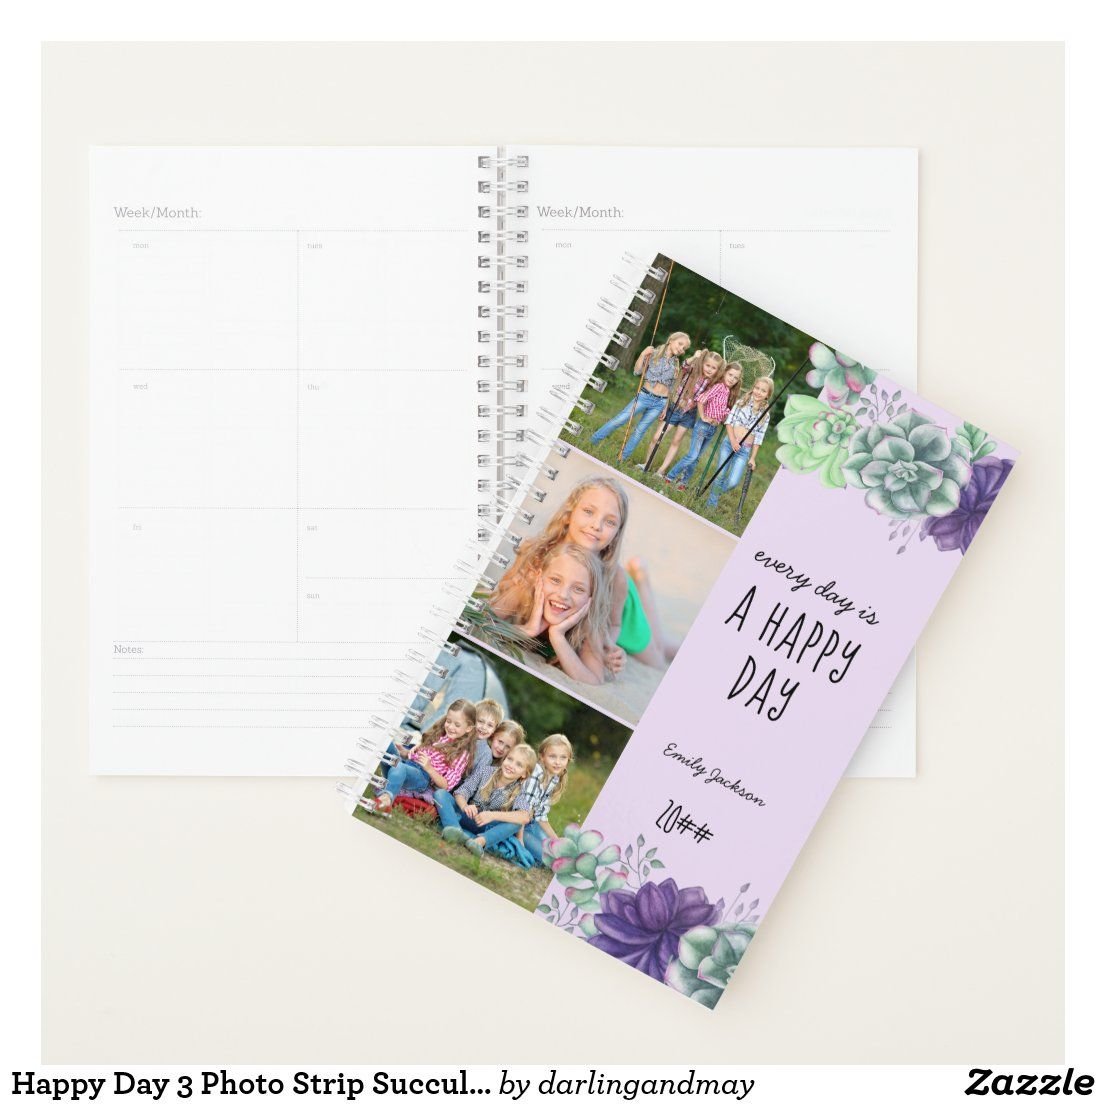 Printed Christmas Cards 2021 With 3 Photos Happy Day 3 Photo Strip Succulents 2021 Planner Zazzle Com Custom Holiday Card Happy Day Planner